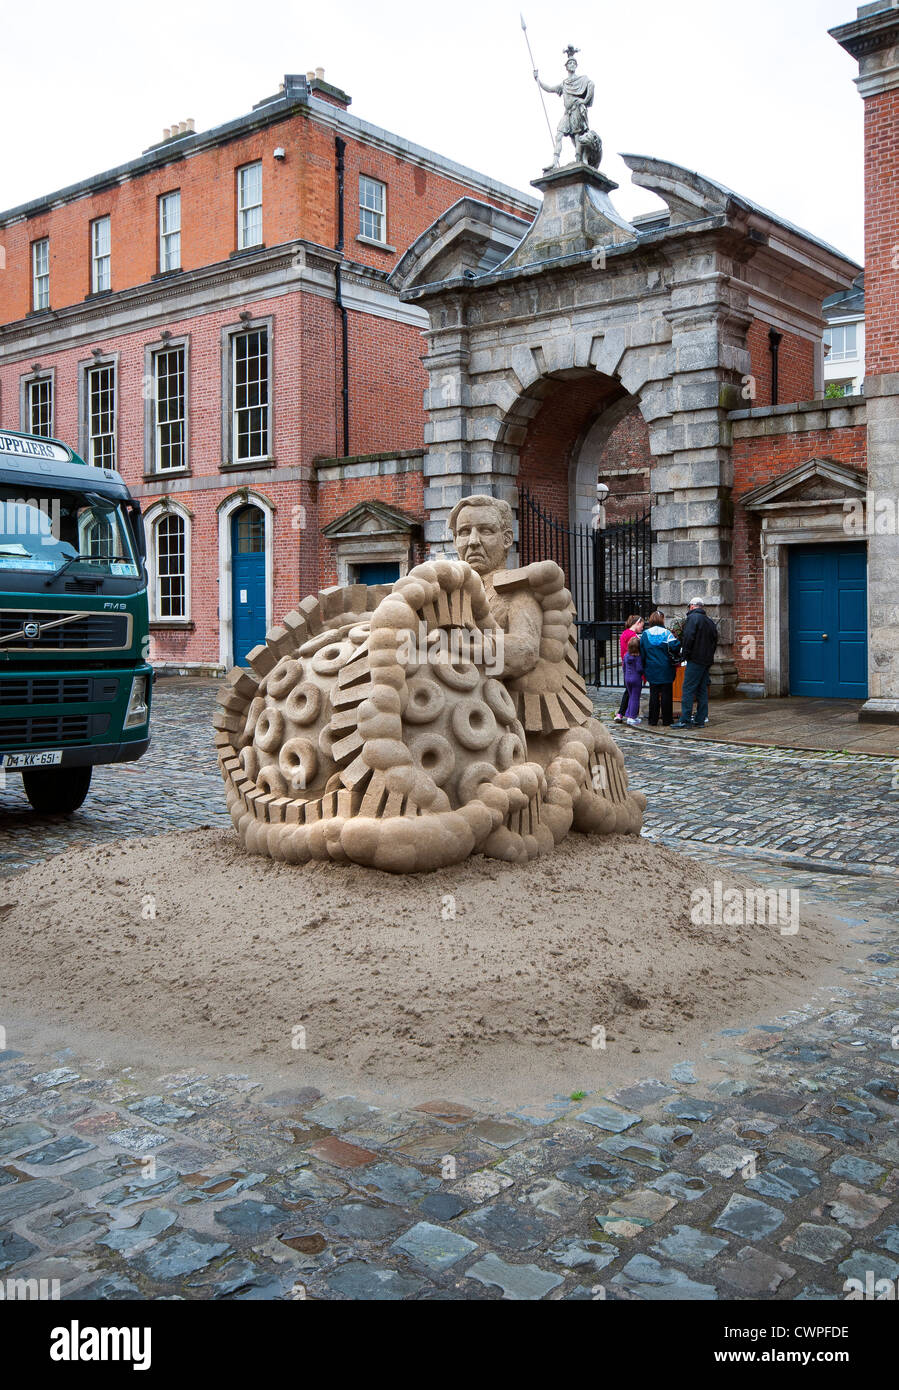 Sand sculpture titled Crystallography by Niall Magee in Dublin, Ireland - Stock Image